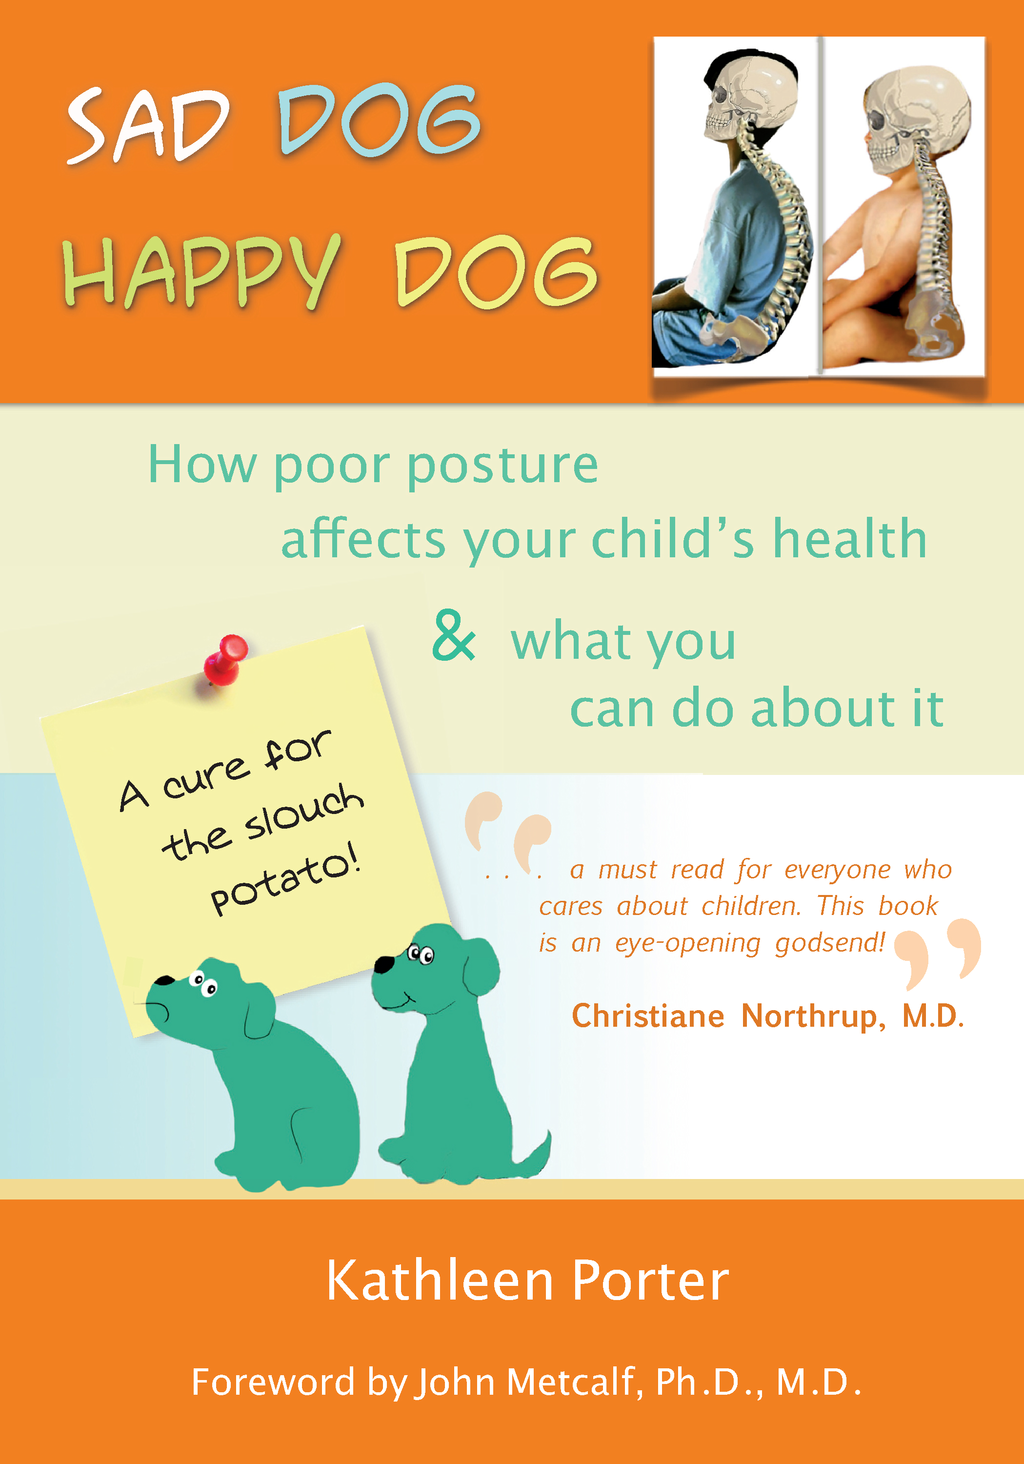 Sad Dog Happy Dog: How Poor Posture Affects Your Child's Health and What You Can Do About It